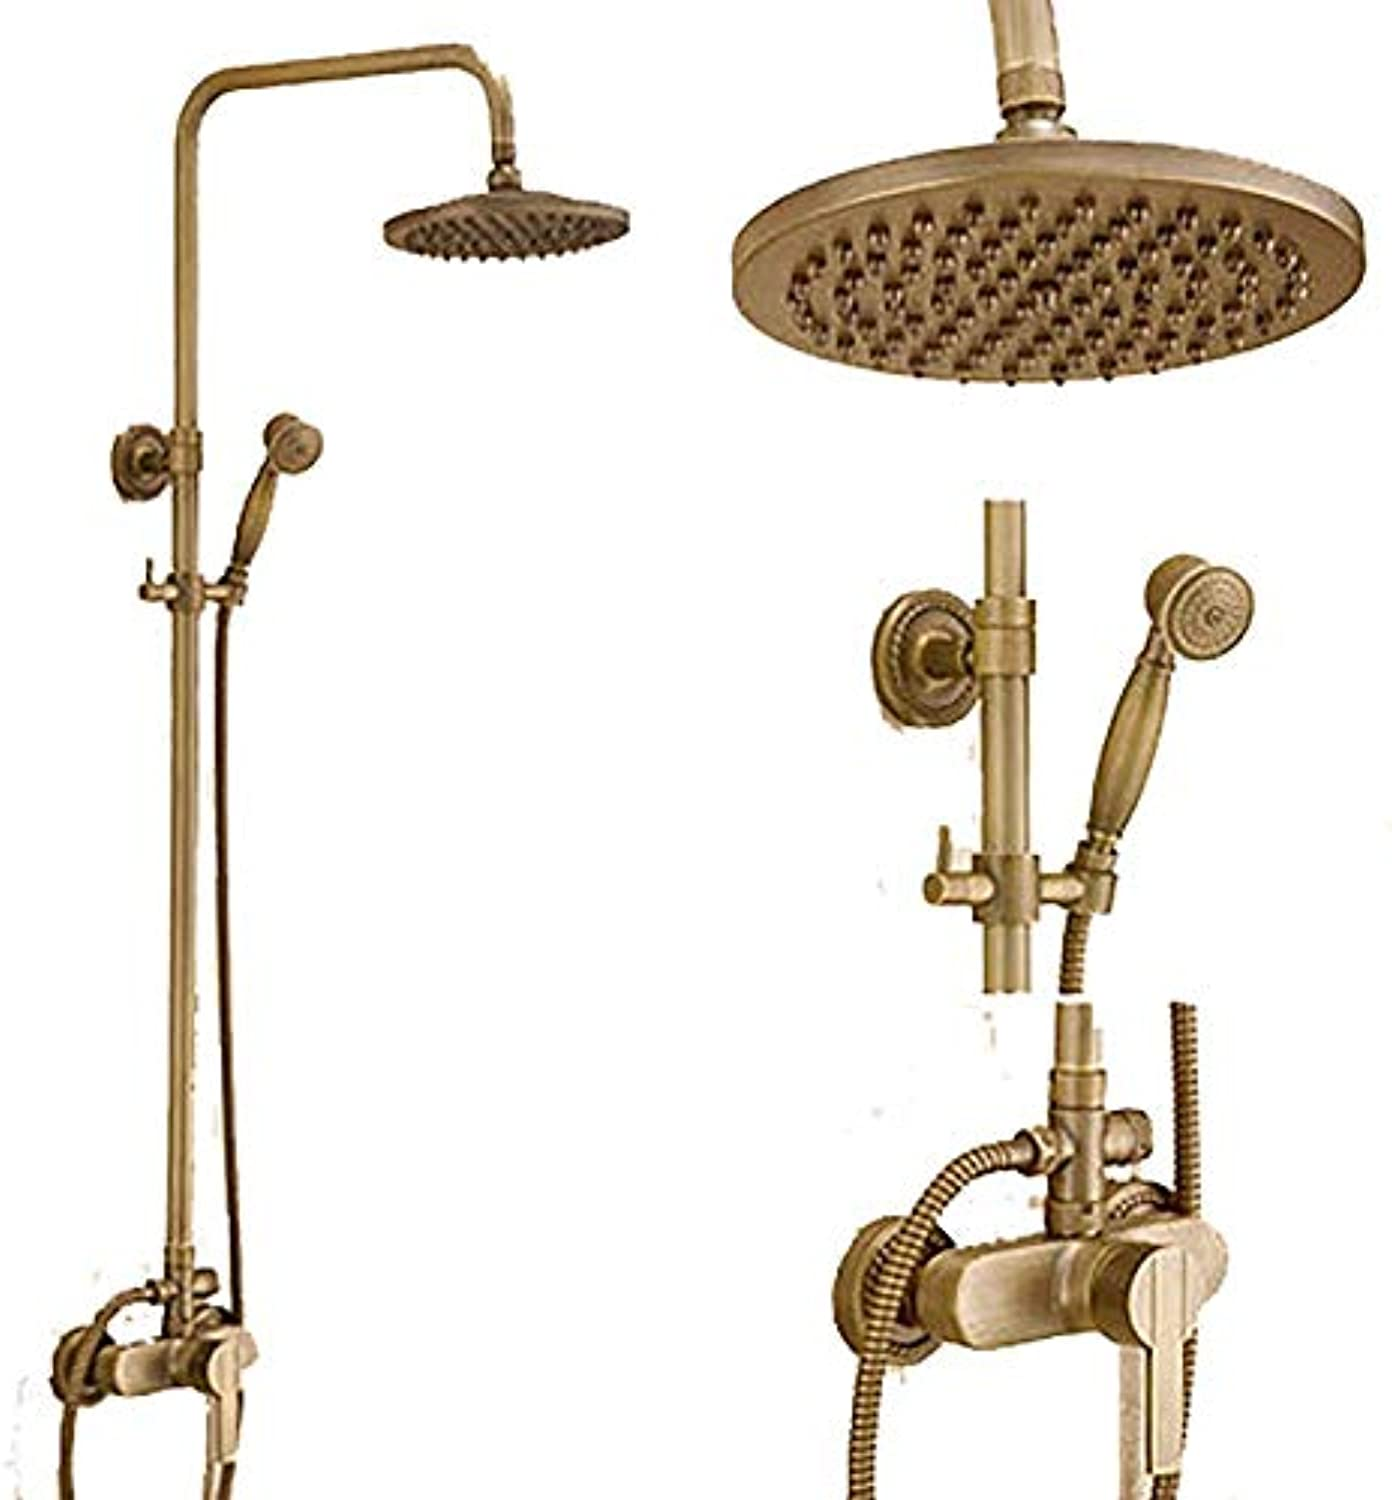 HAIHANGYUANDA Bad European Antique Shower Set, Kupfermaterial, Family Hotel Wall-montiert Cold Hot Shower Faucet, Free Lifting 3-Loch InsGrößetion (Farbe  Messing)